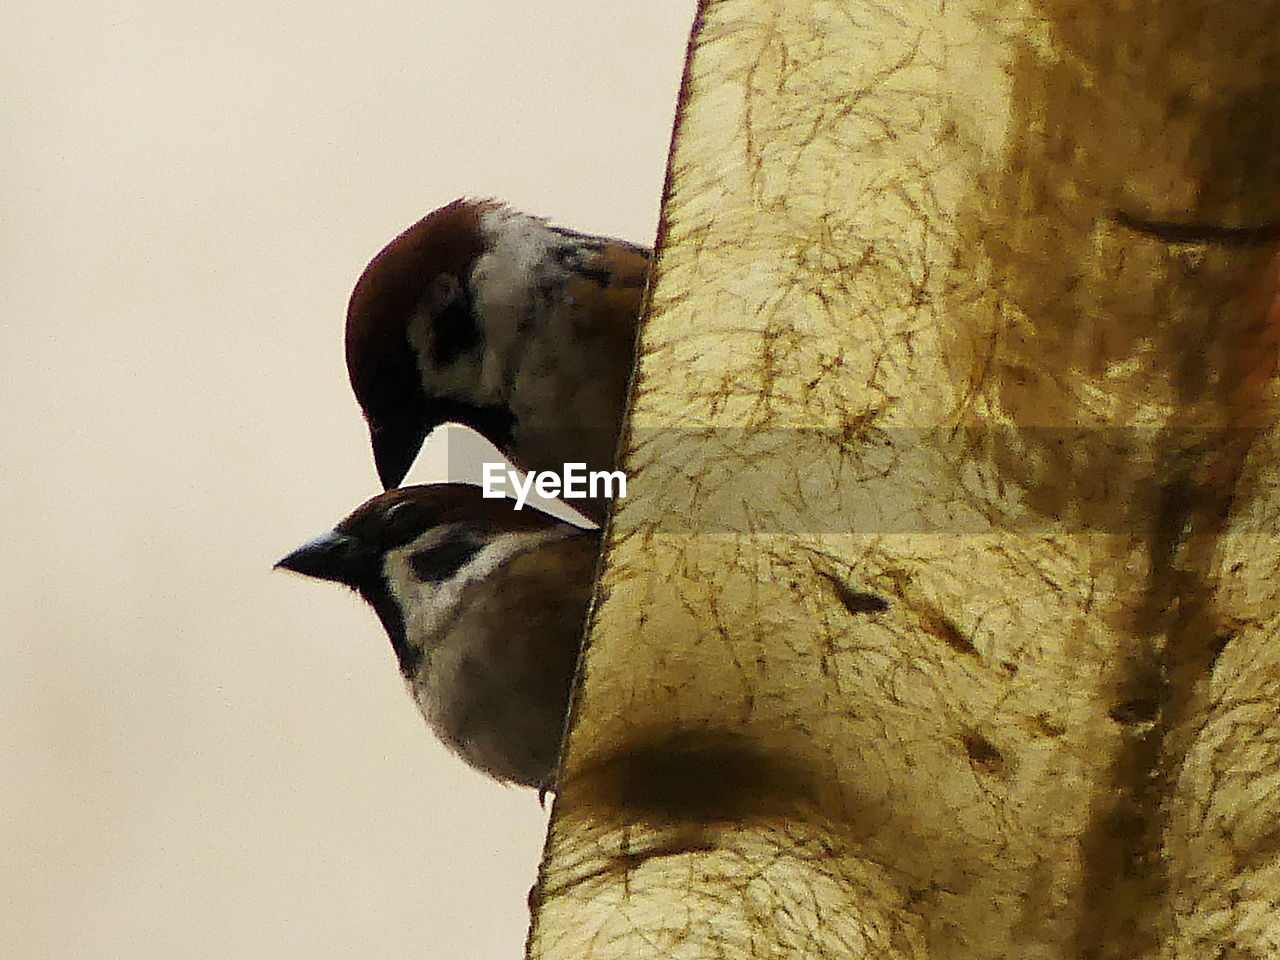 animal themes, animal, vertebrate, animal wildlife, animals in the wild, bird, one animal, no people, low angle view, tree, nature, day, trunk, tree trunk, close-up, outdoors, perching, sky, branch, clear sky, woodpecker